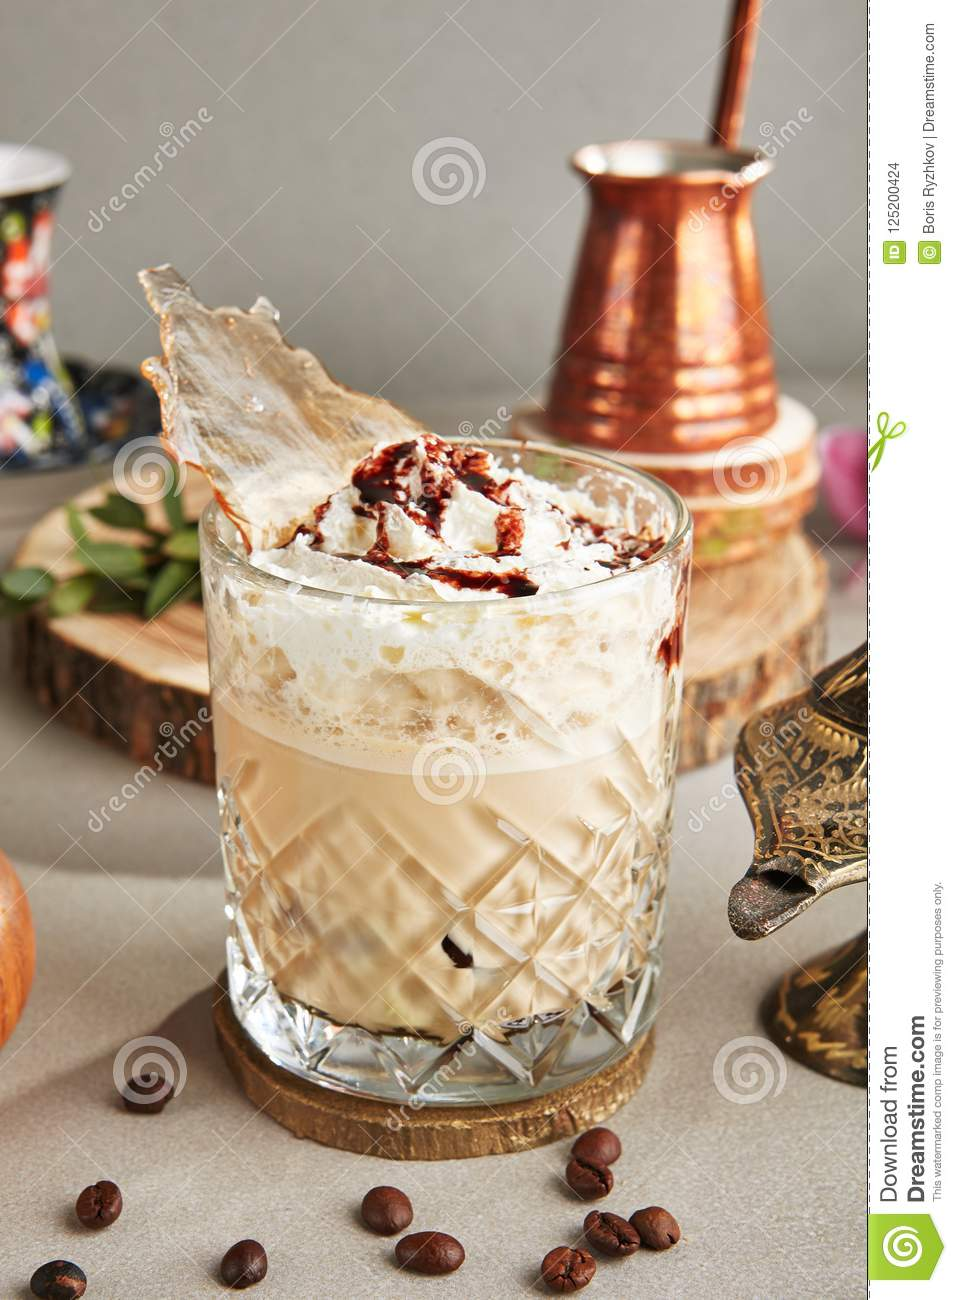 281e0f415e1 Natural Cold Coffee with Whipped Cream, Ice and Chocolate Syrup Closeup. Latte  Macchiato, Cappuccino or Mocha with Milk Foam on Dark Vintage Background ...